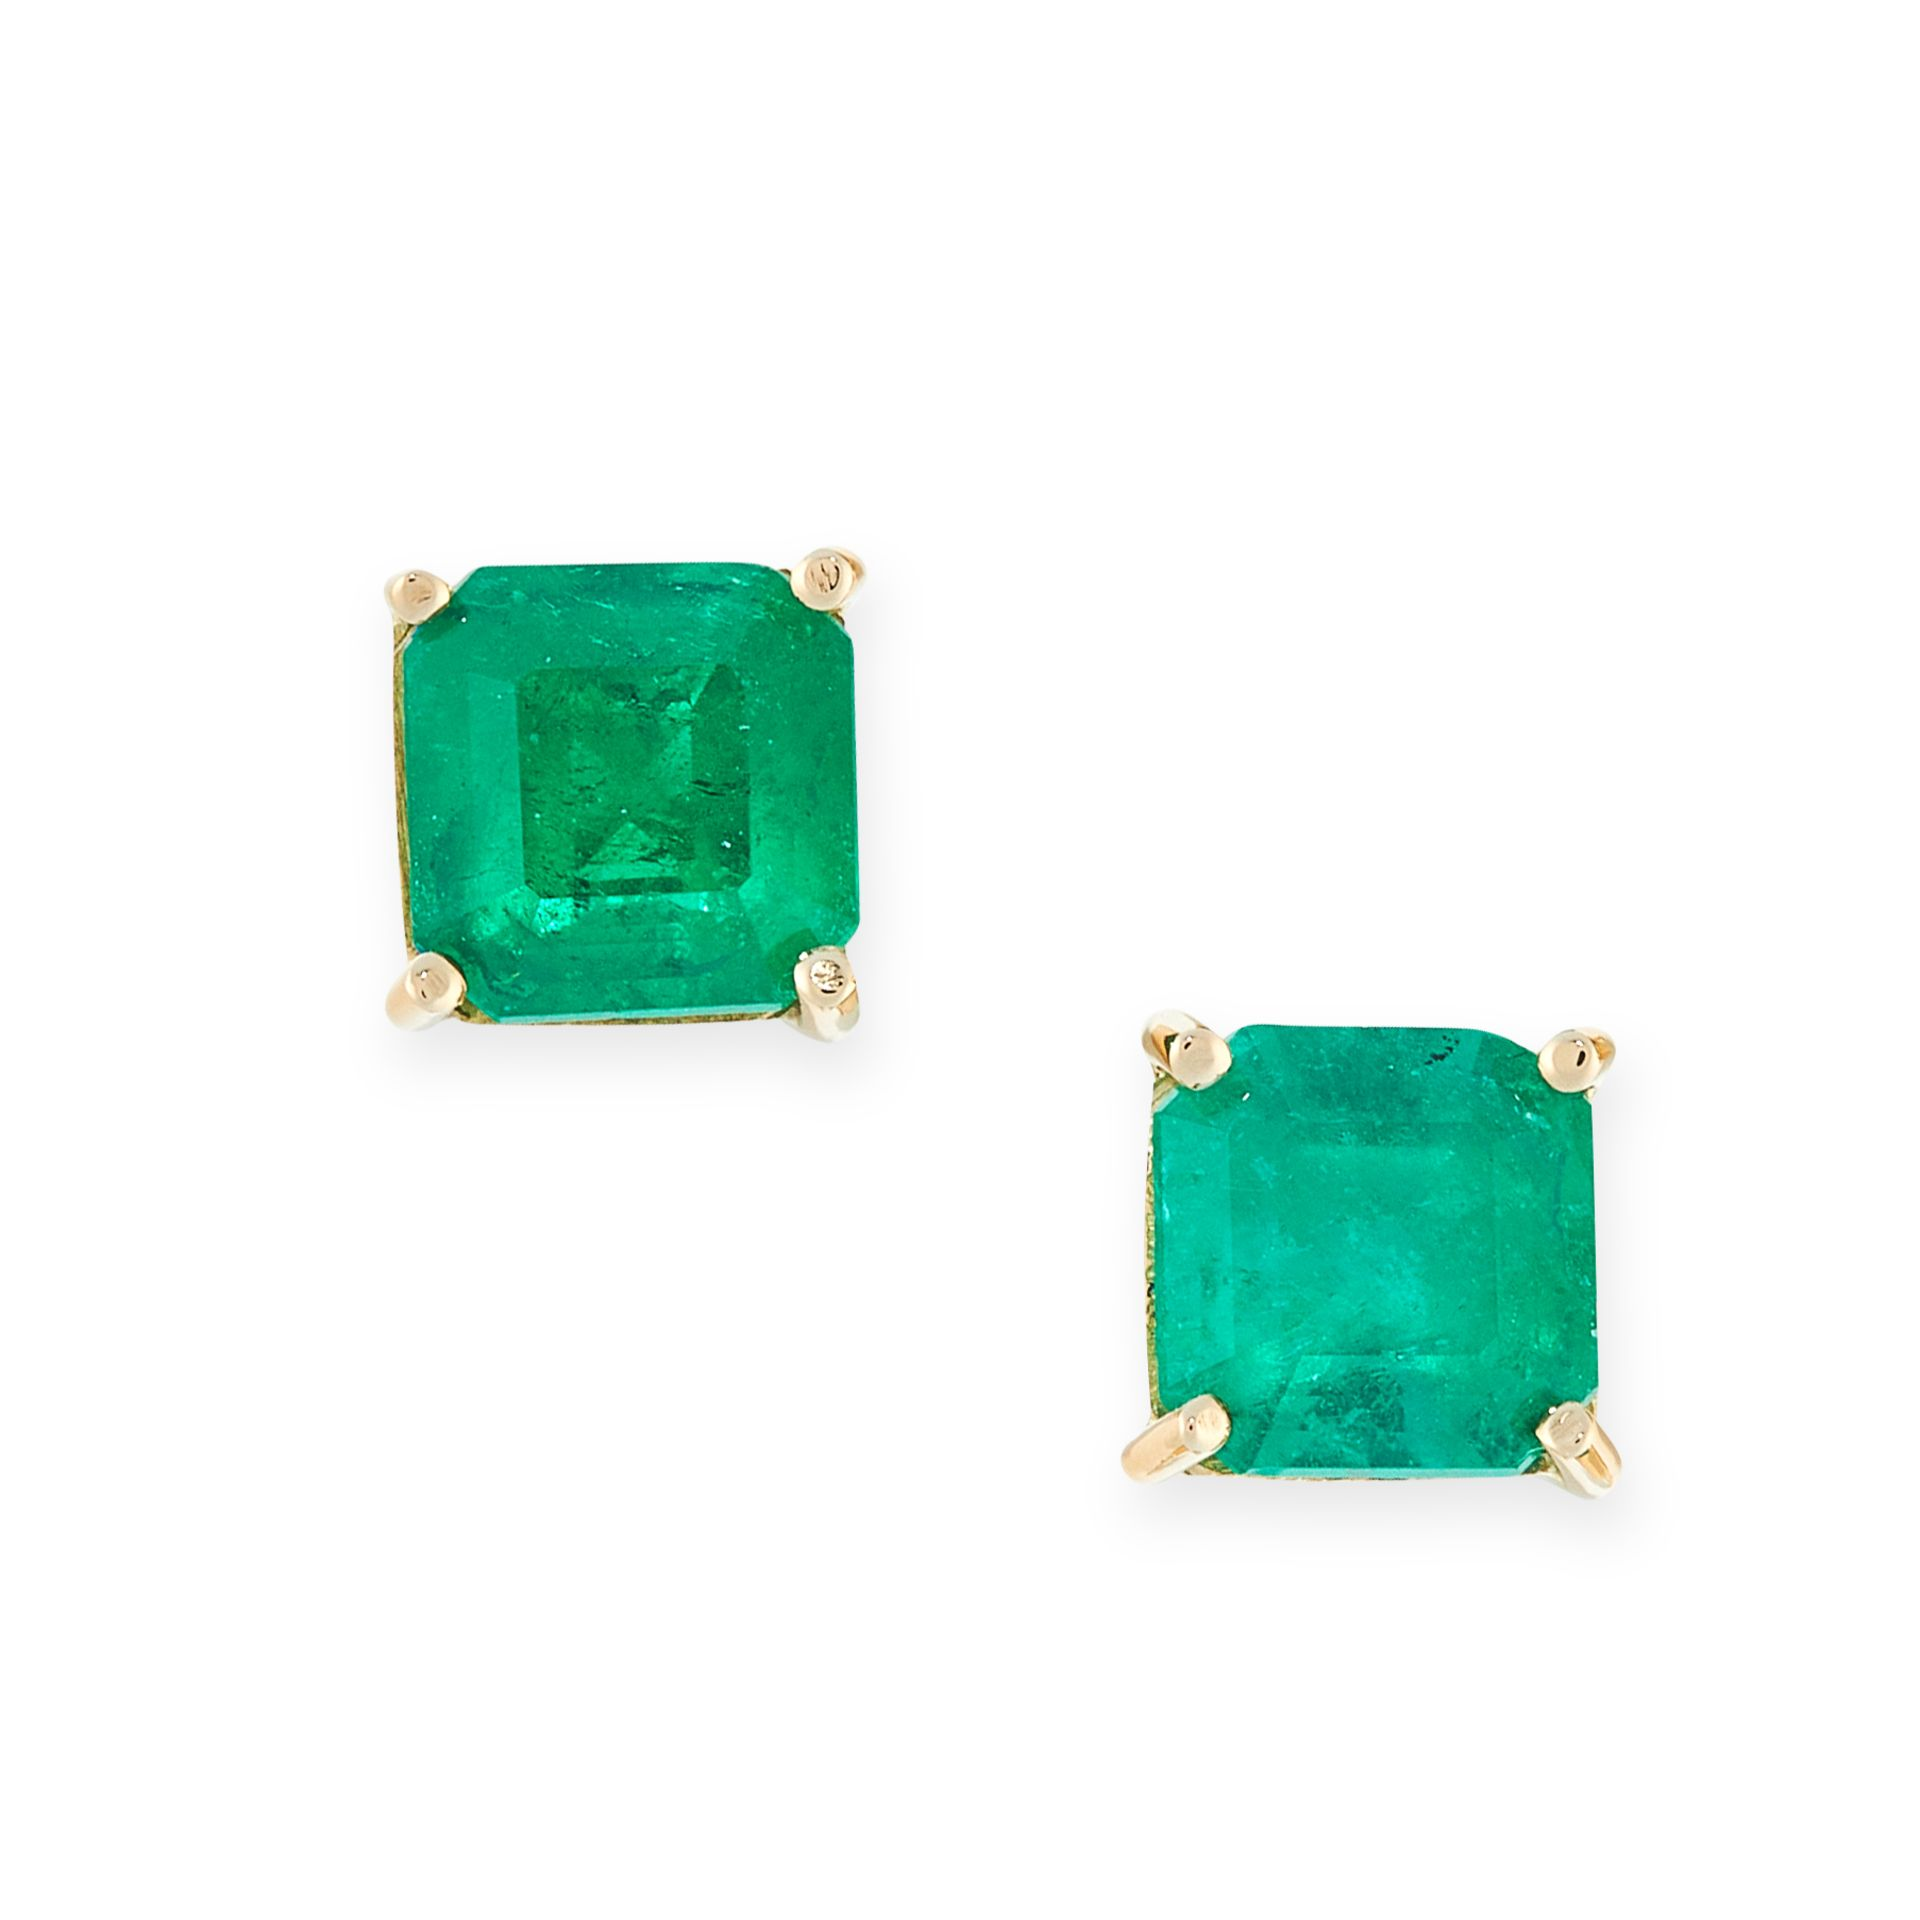 A PAIR OF EMERALD STUD EARRINGS in 18ct yellow gold, each set with an emerald cut emerald